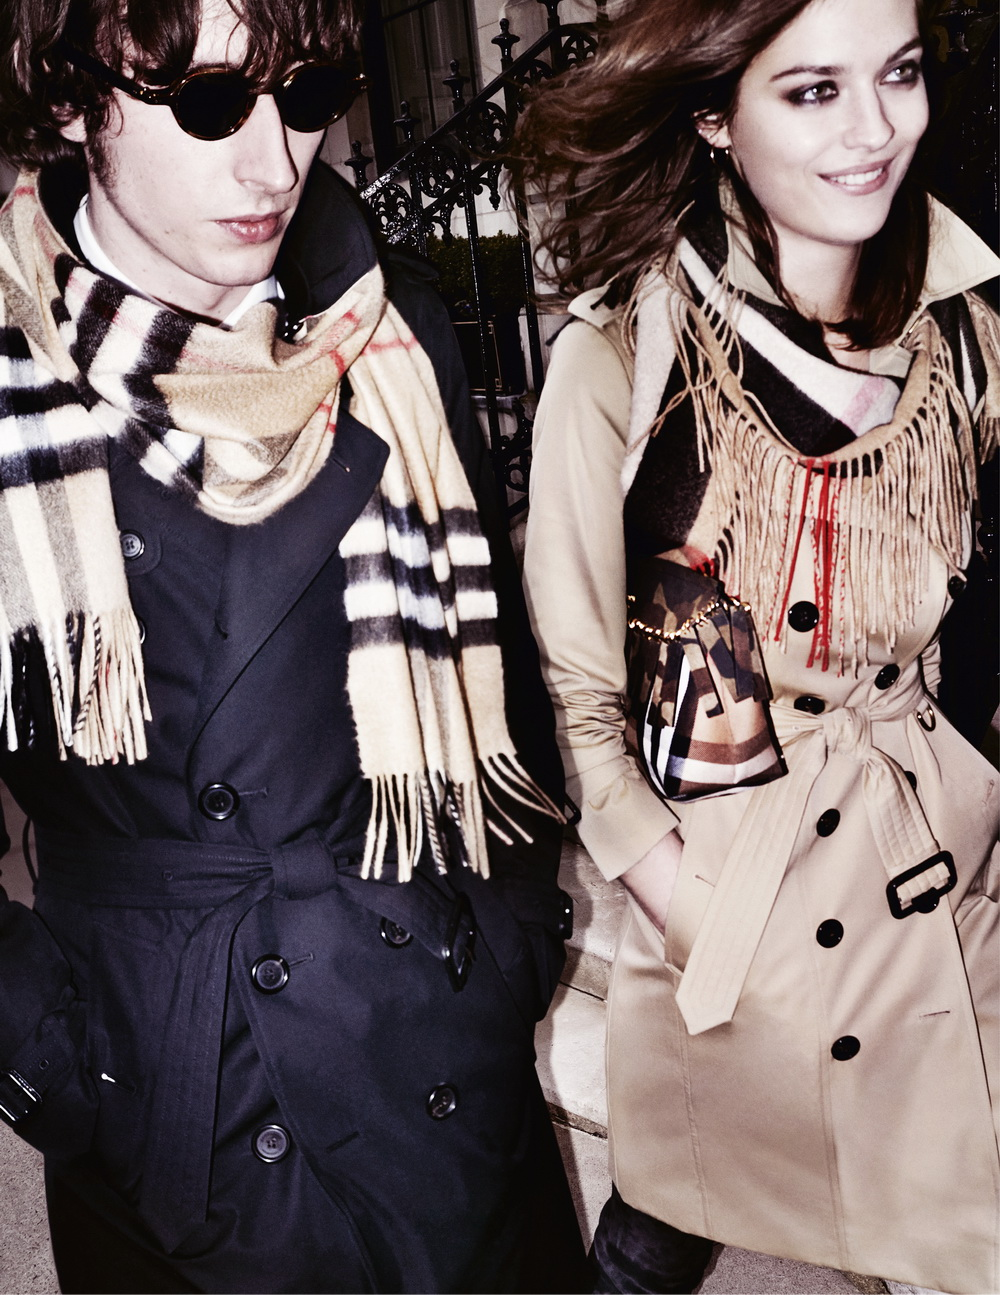 Burberry Autumn Winter 2015 Campaign